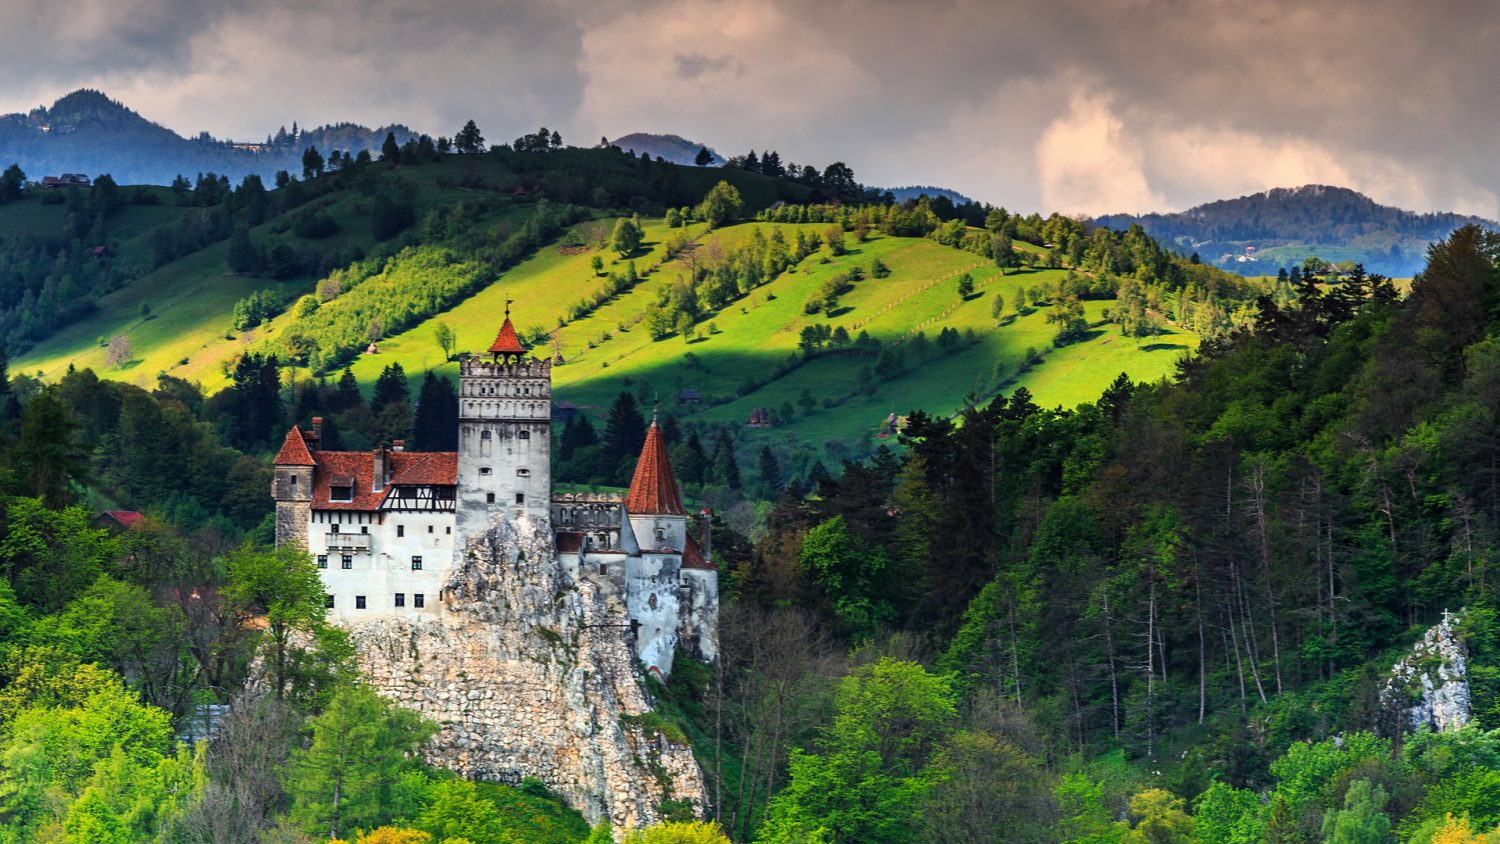 https://www.thenaturaladventure.com/wp-content/uploads/2017/10/brancastle.jpg